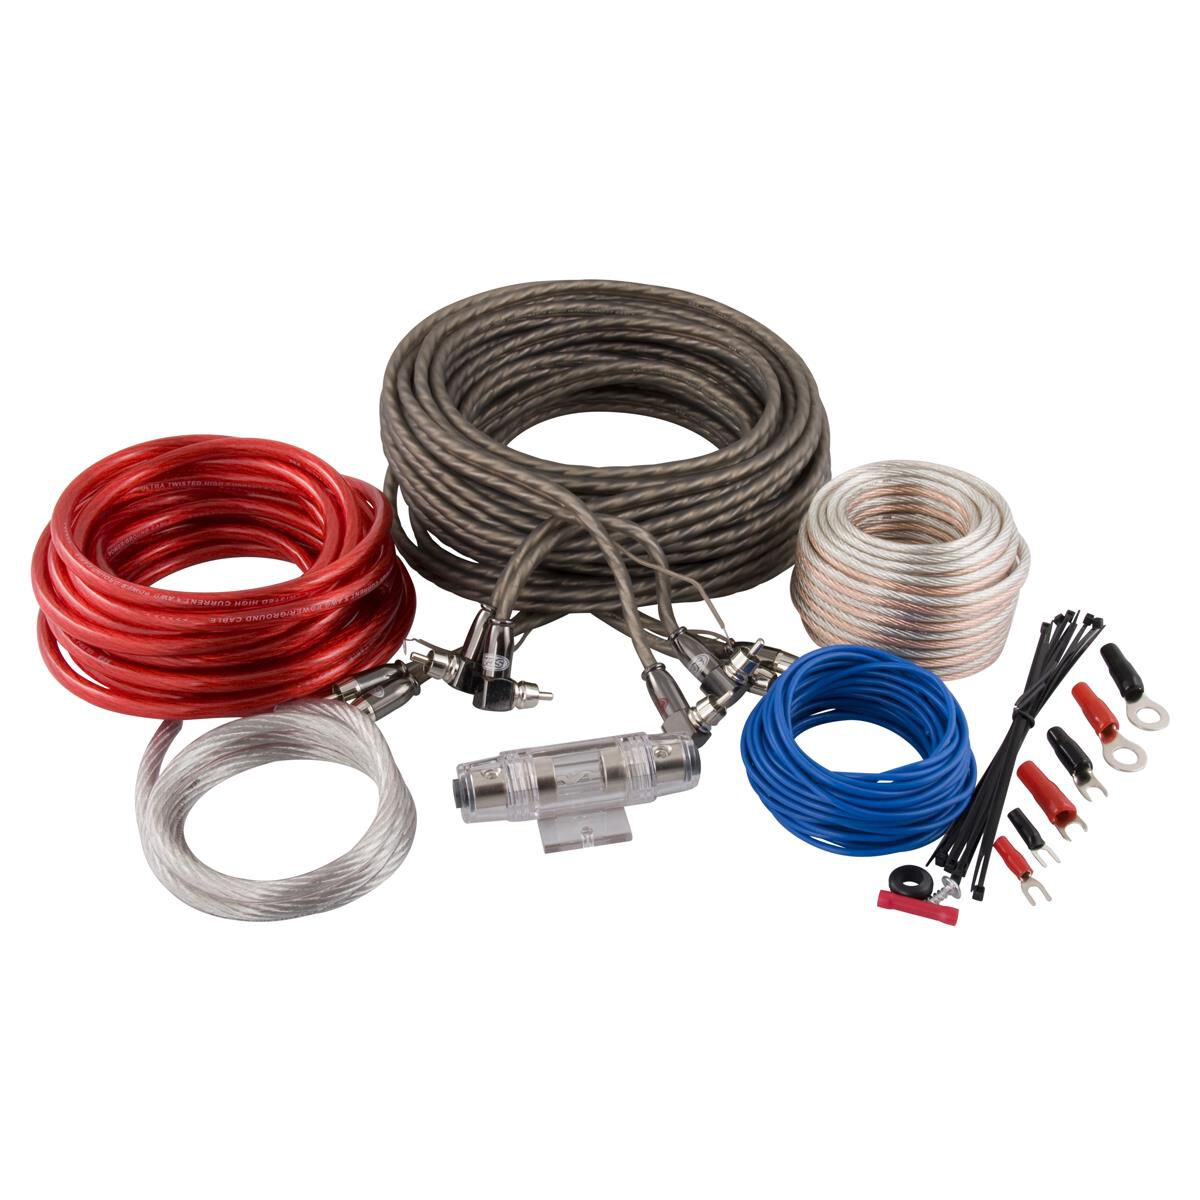 Sub Wiring Kit Trusted Diagrams Audio Kits Supercheap Auto Subwoofer Amplifier 4 Channel 8 Gauge